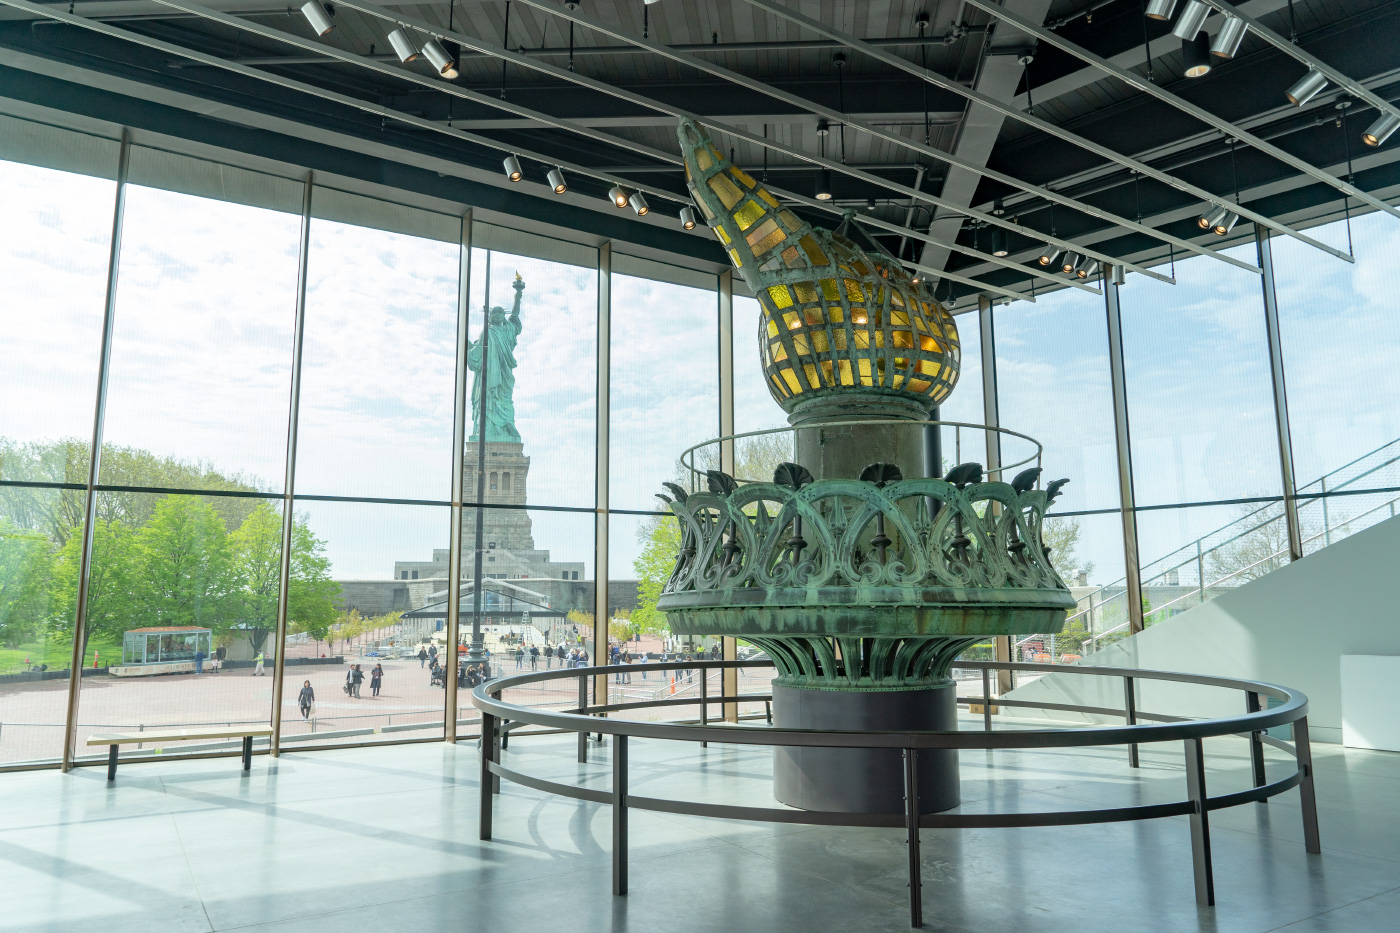 Photo of a multistory copper torch foregrounded against the Statue of Liberty